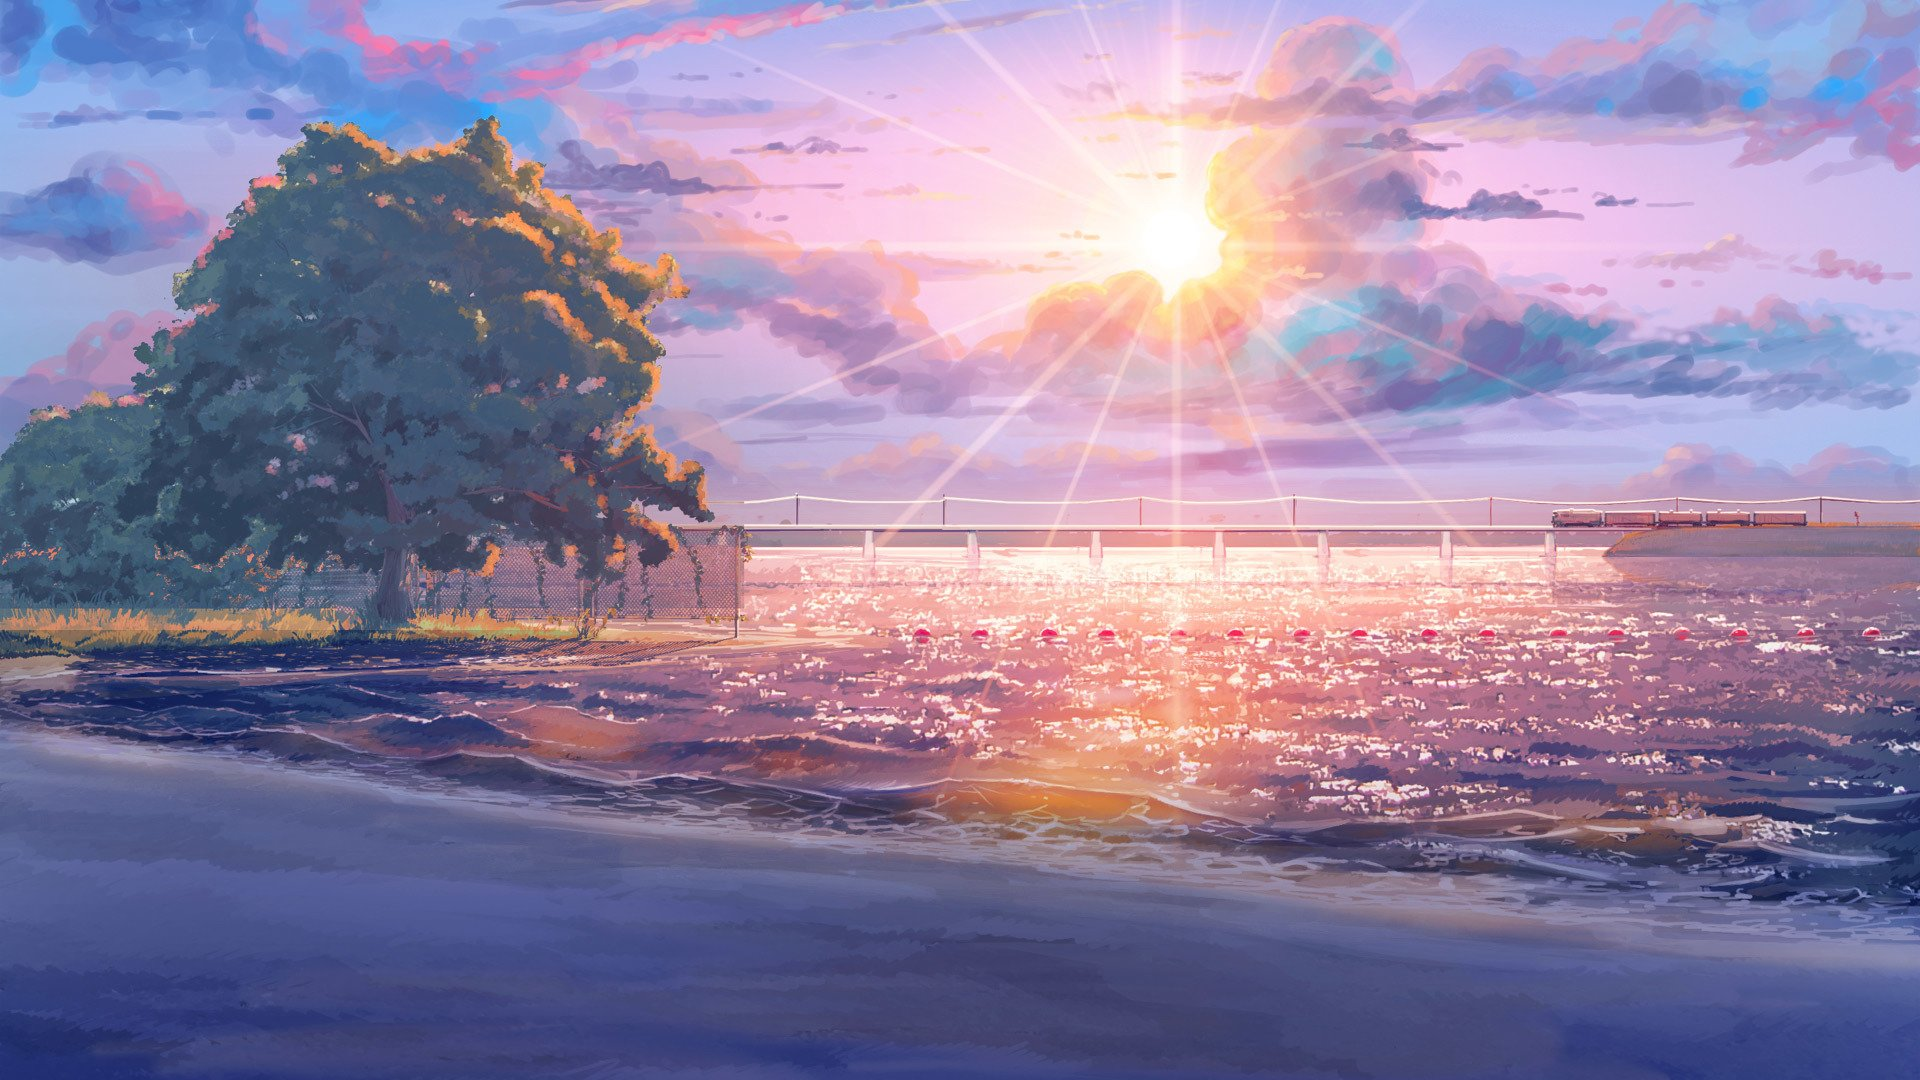 endless summer ship fantasy - photo #2